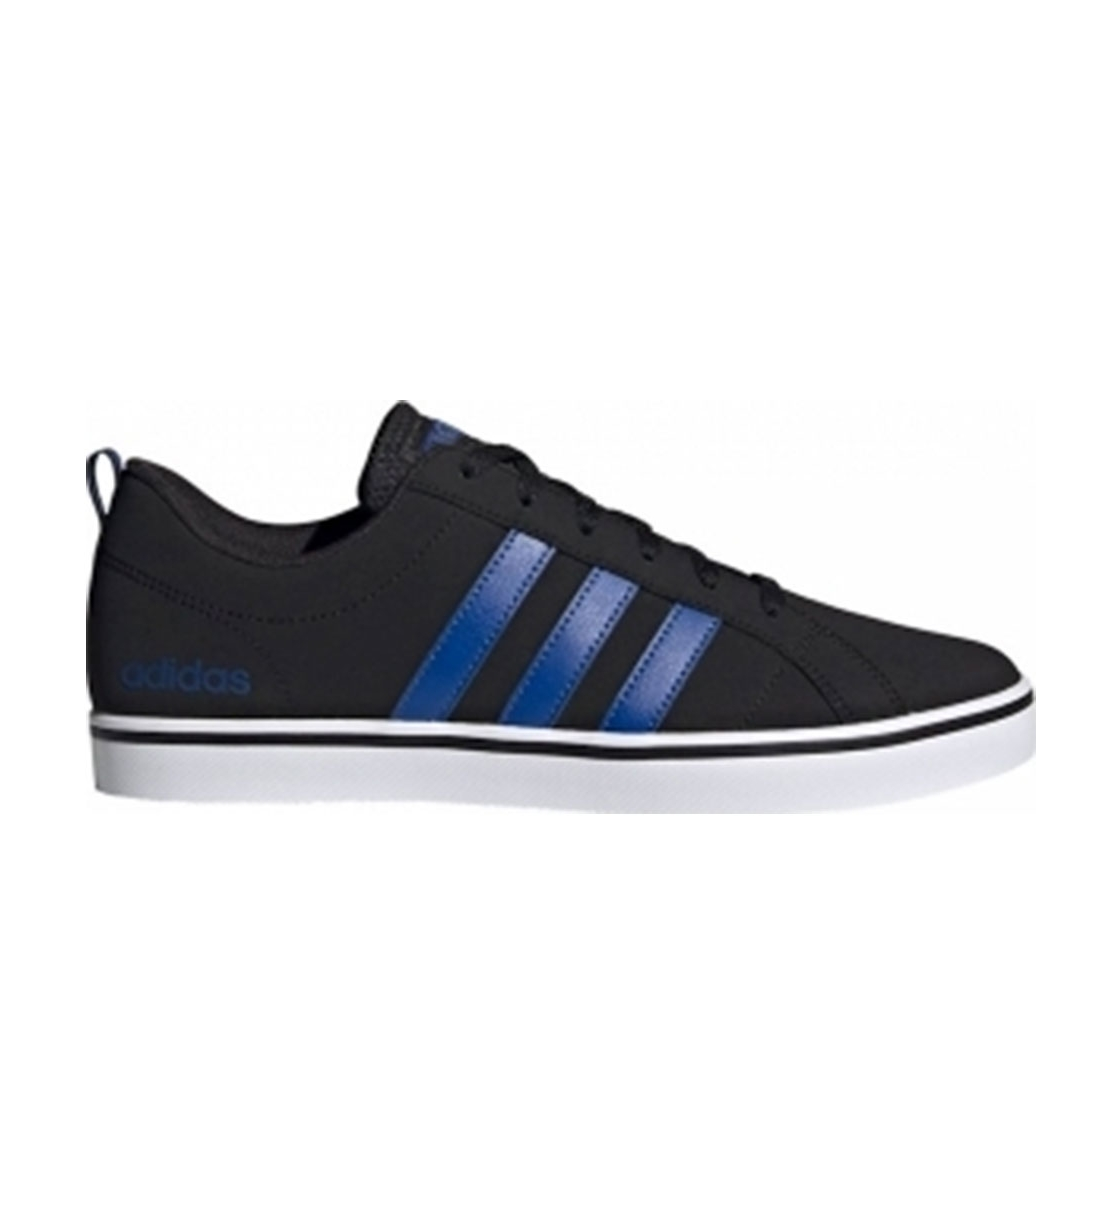 adidas Ανδρικό Παπούτσι Μόδας Ss21 Vs Pace FY8579